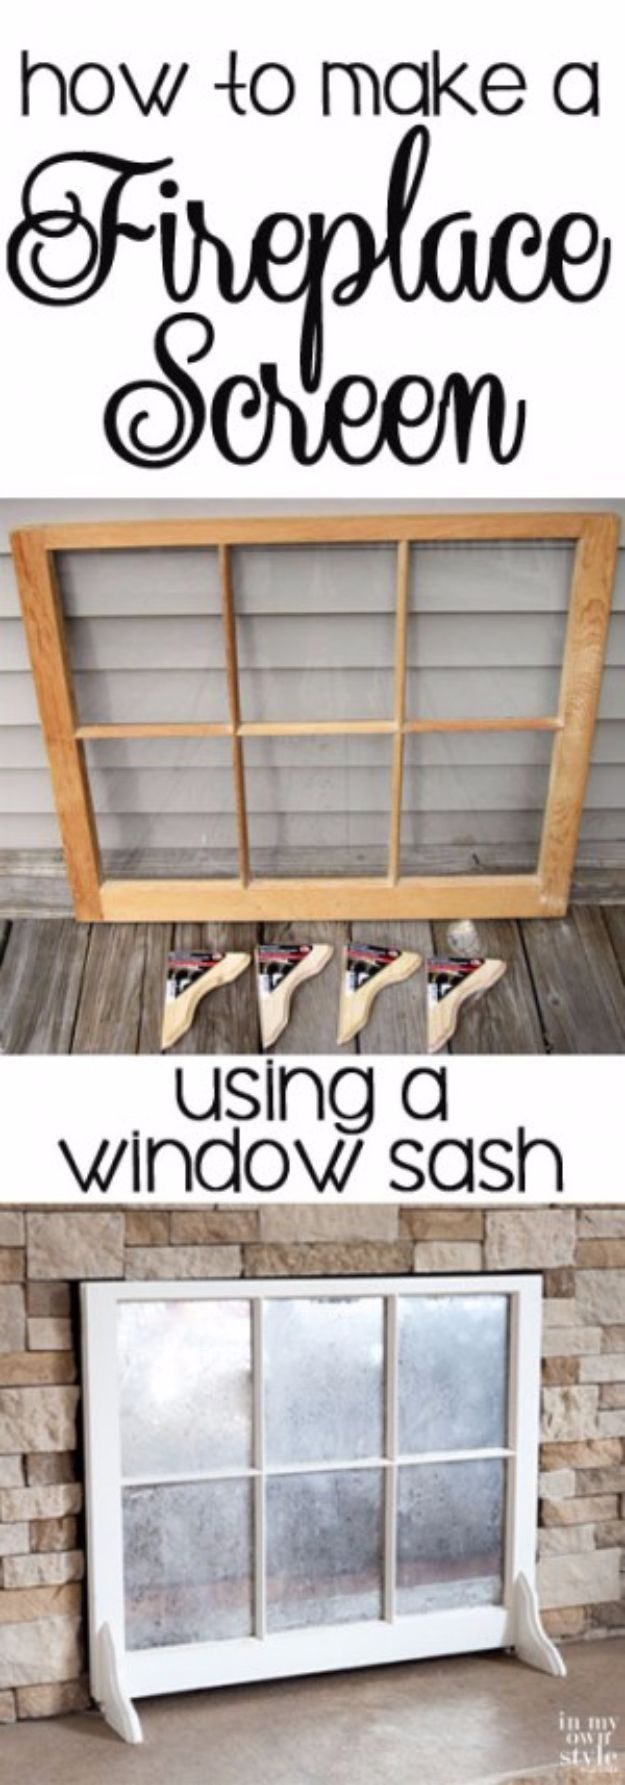 37 creative ways to make things from old windows diy joy